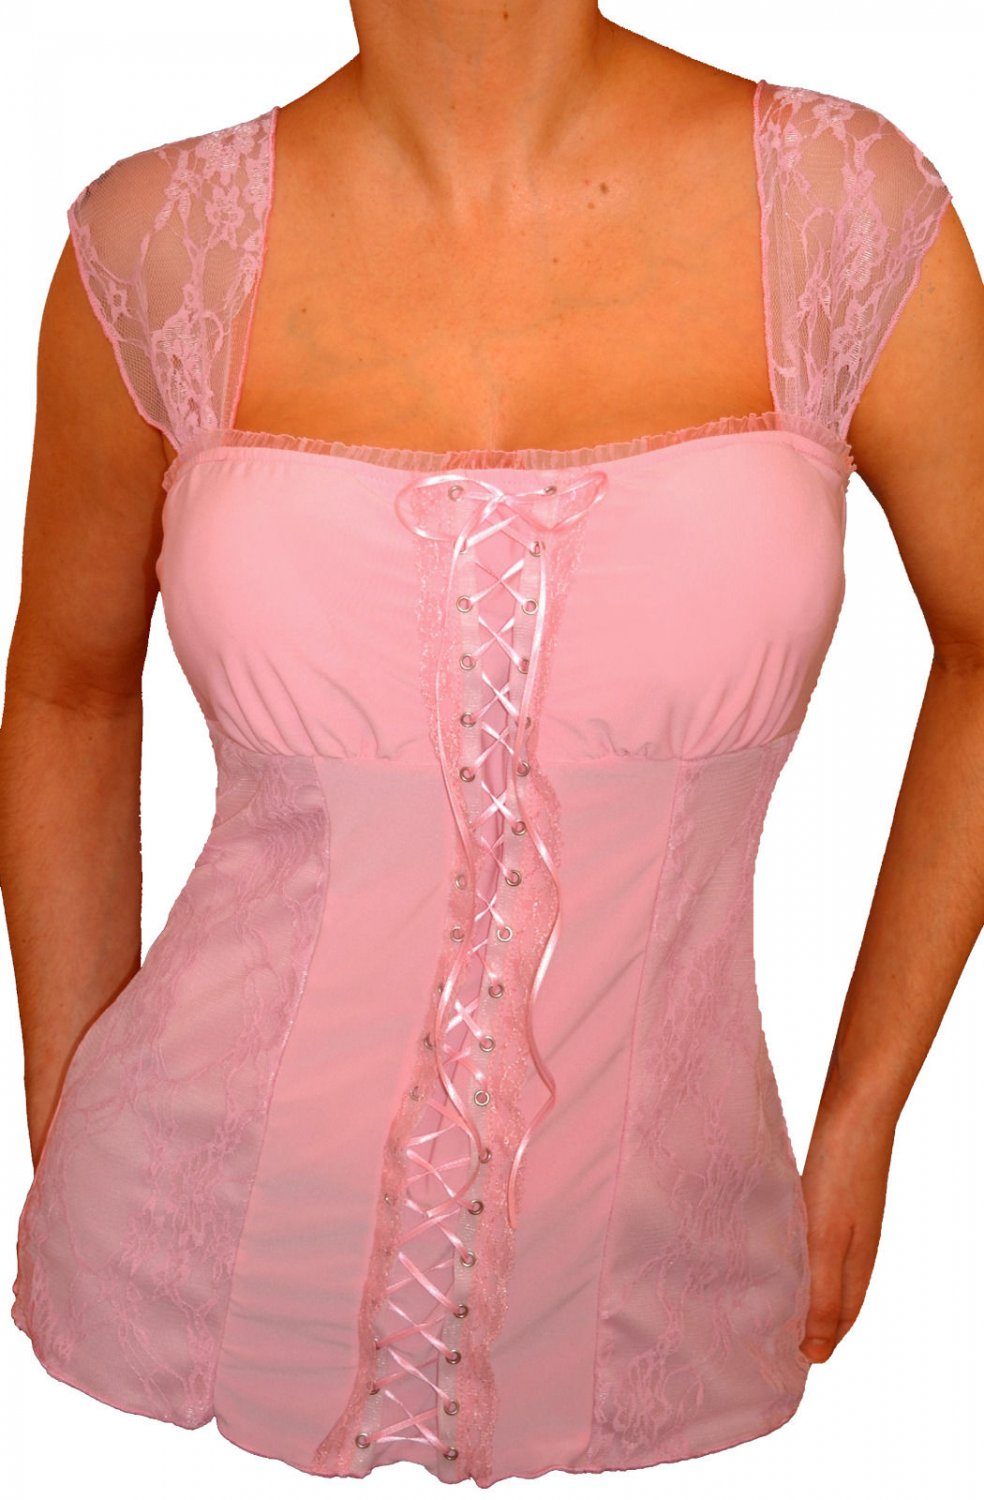 QR10 FUNFASH COTTON CANDY PINK LACE BUSTIER PLUS SIZE CORSET TOP SHIRT 1X XL 16